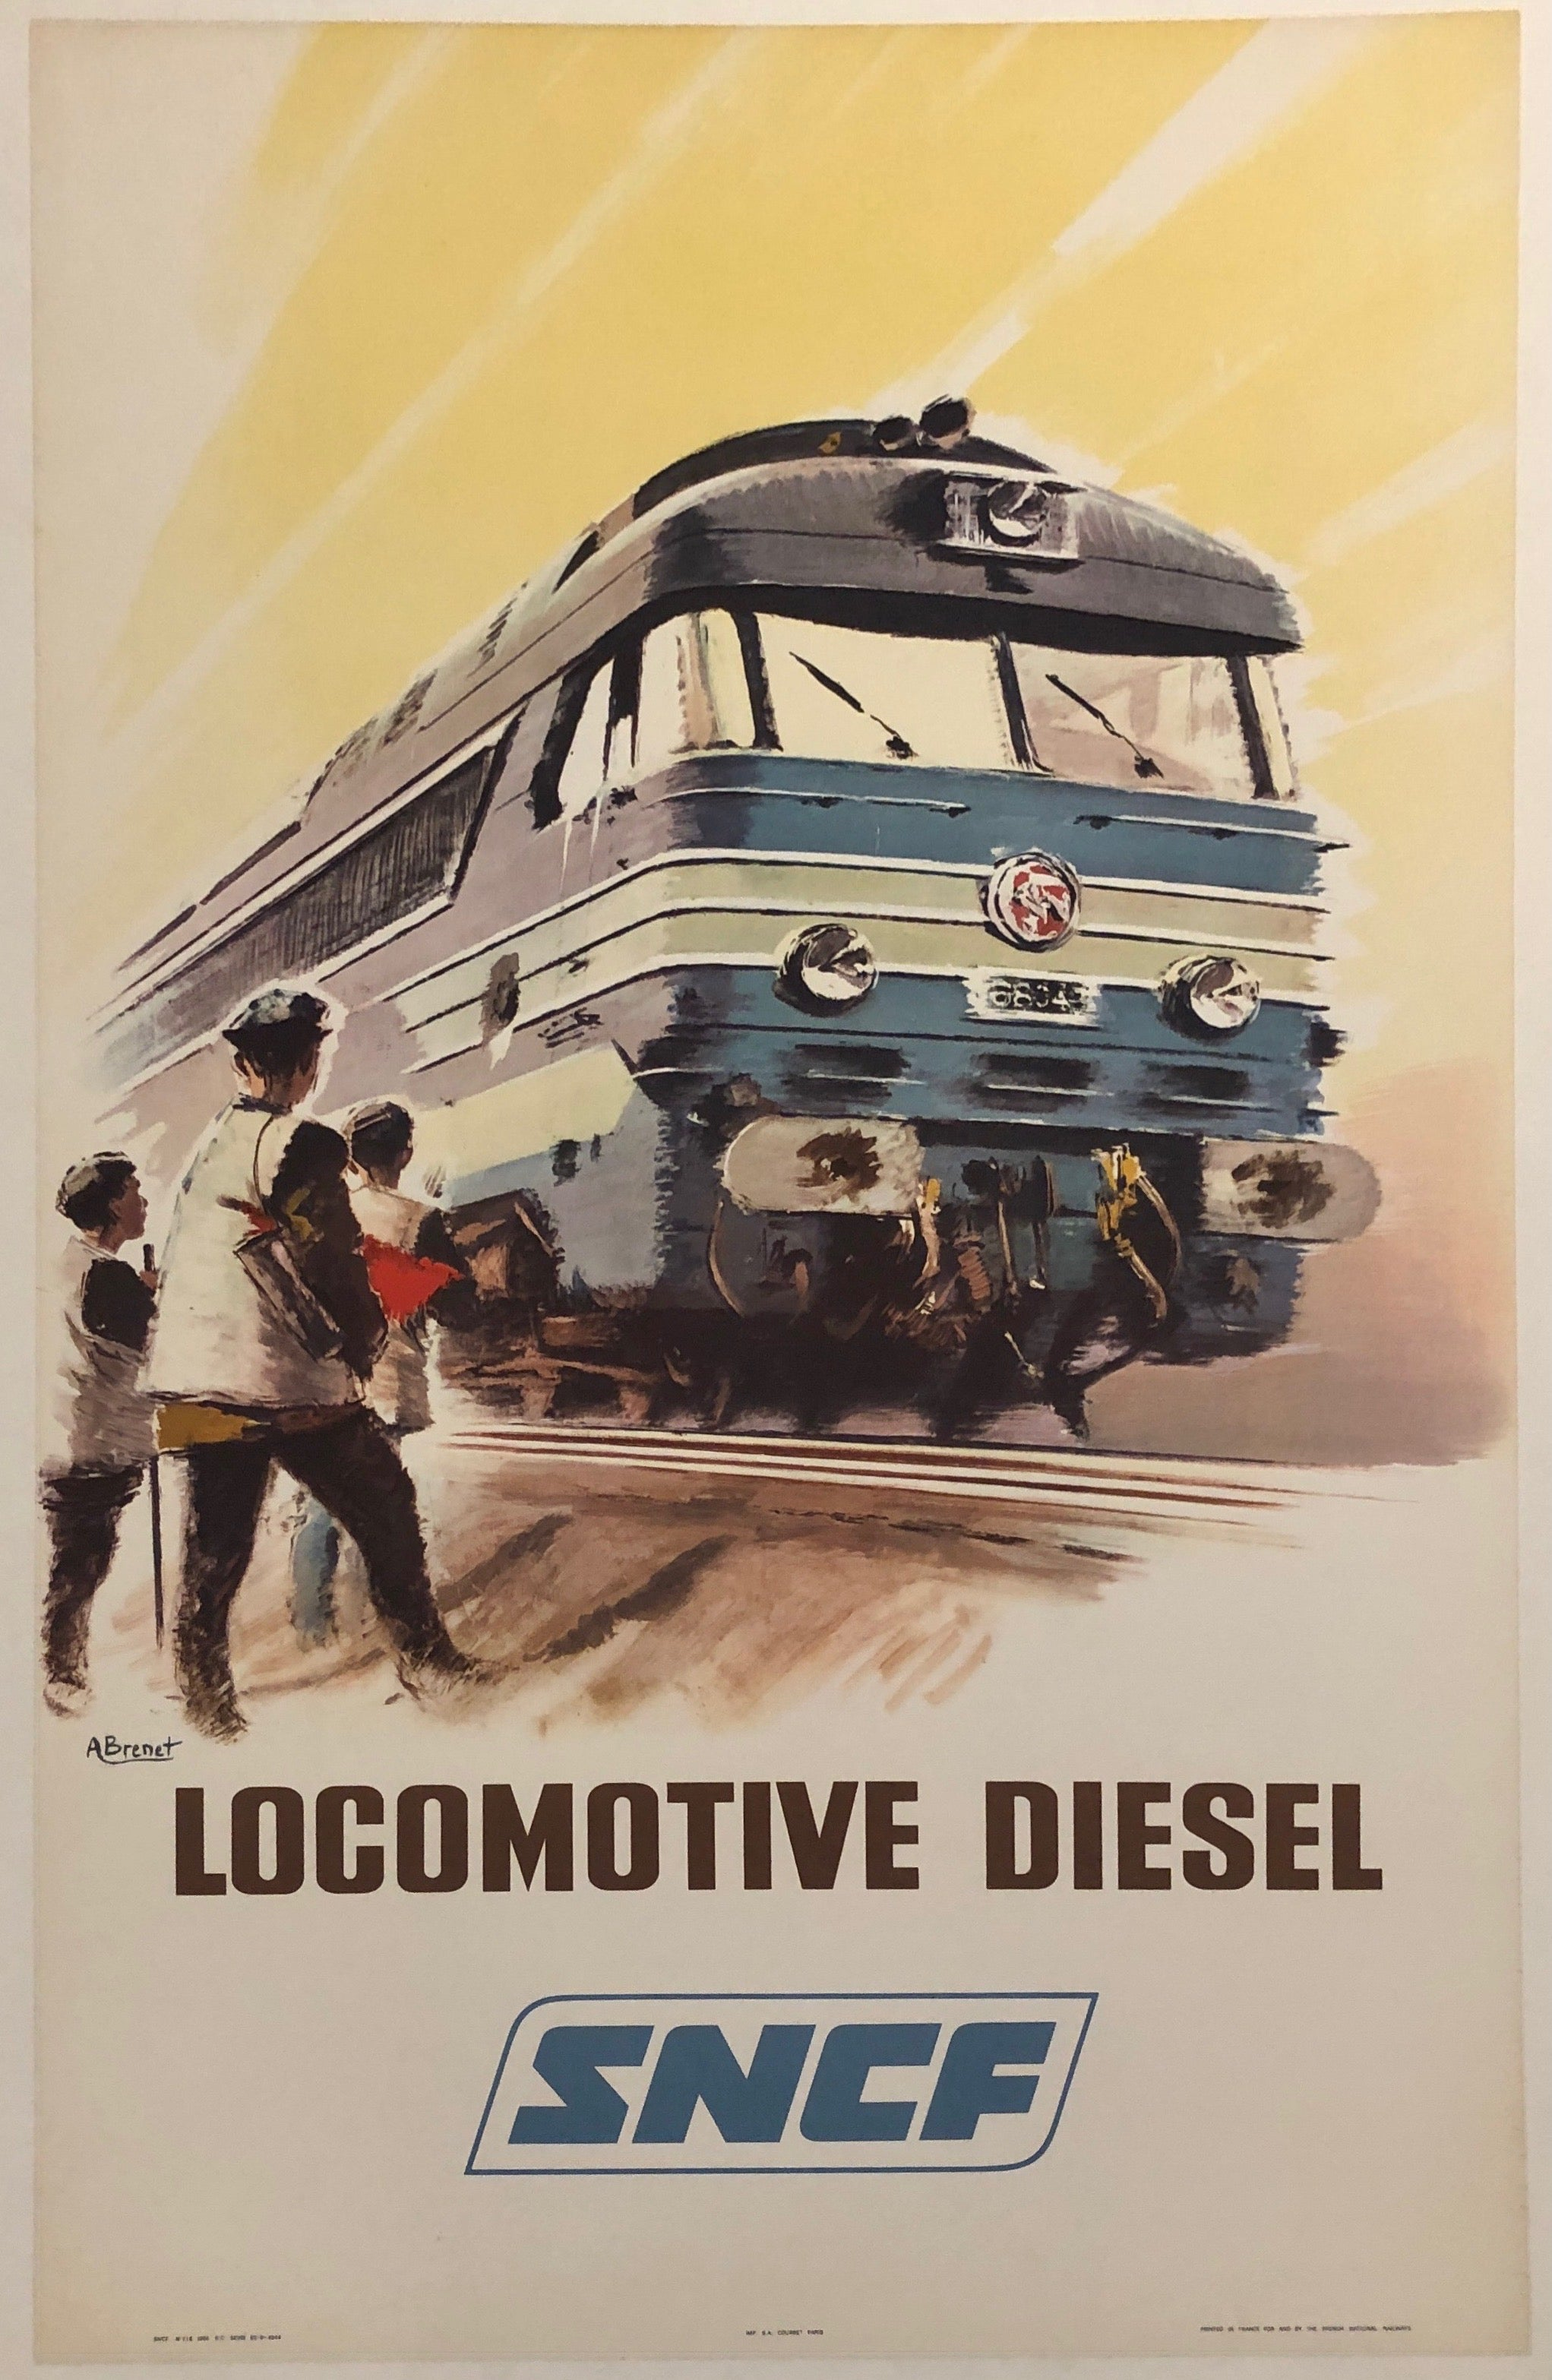 French poster for the SNCF. The Société nationale des chemins de fer français (SNCF) is France's national state-owned railway company.  The poster shows a speeding train rushing past three figures on the side of the tracks.